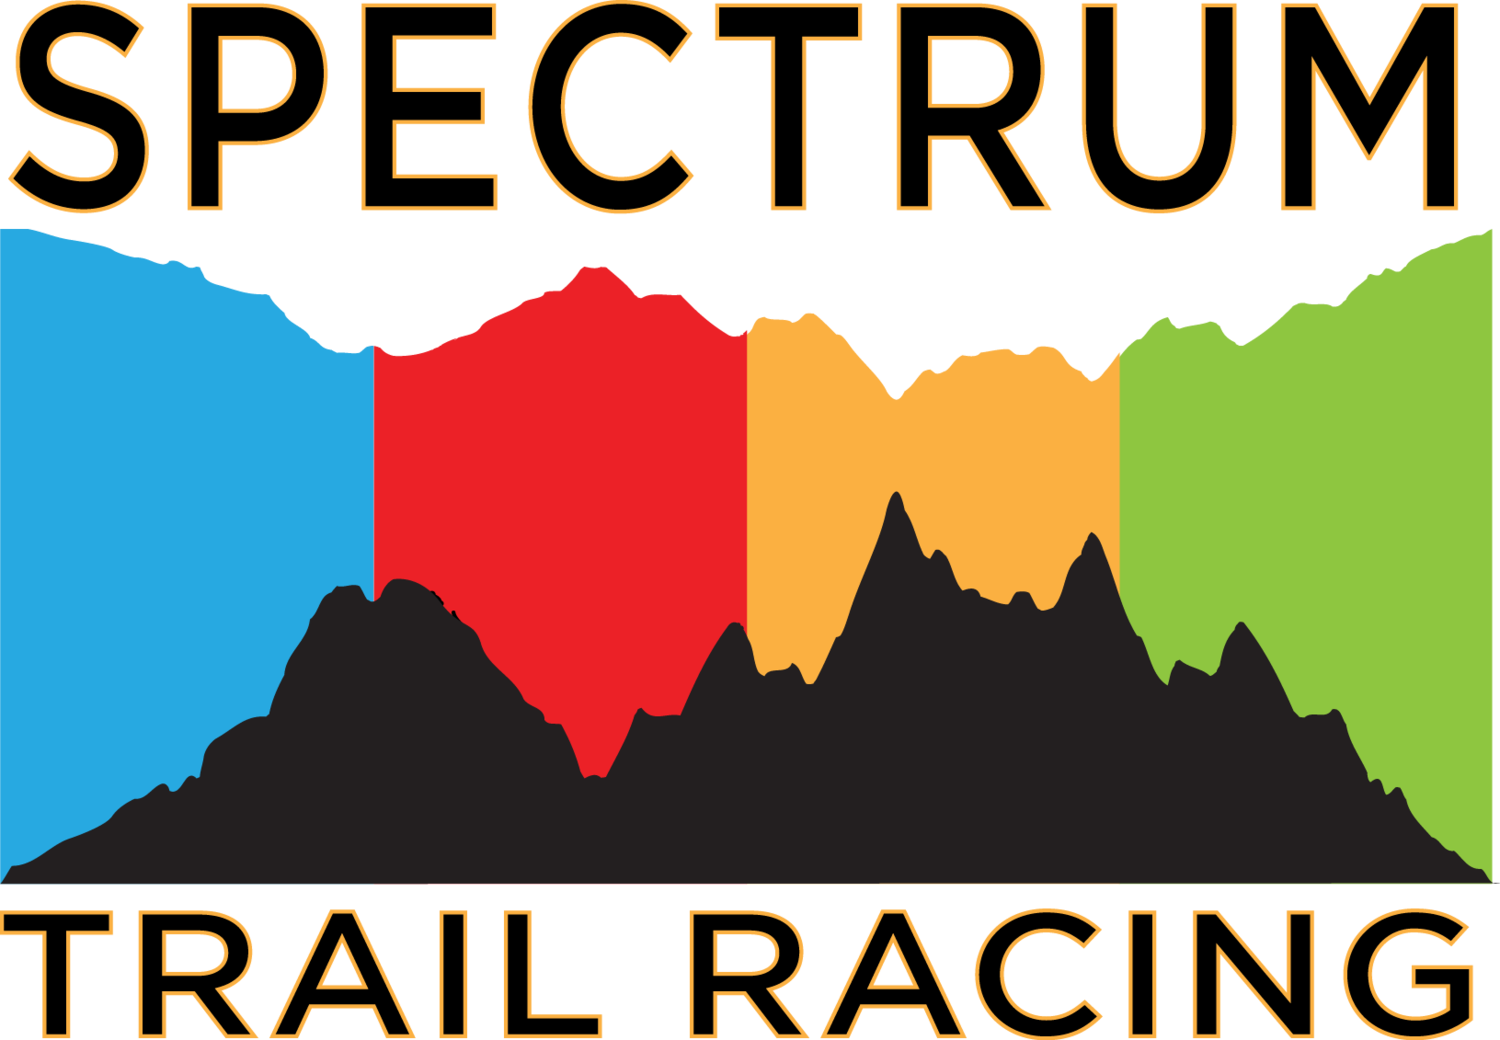 Shit trail png. The game spectrum racing